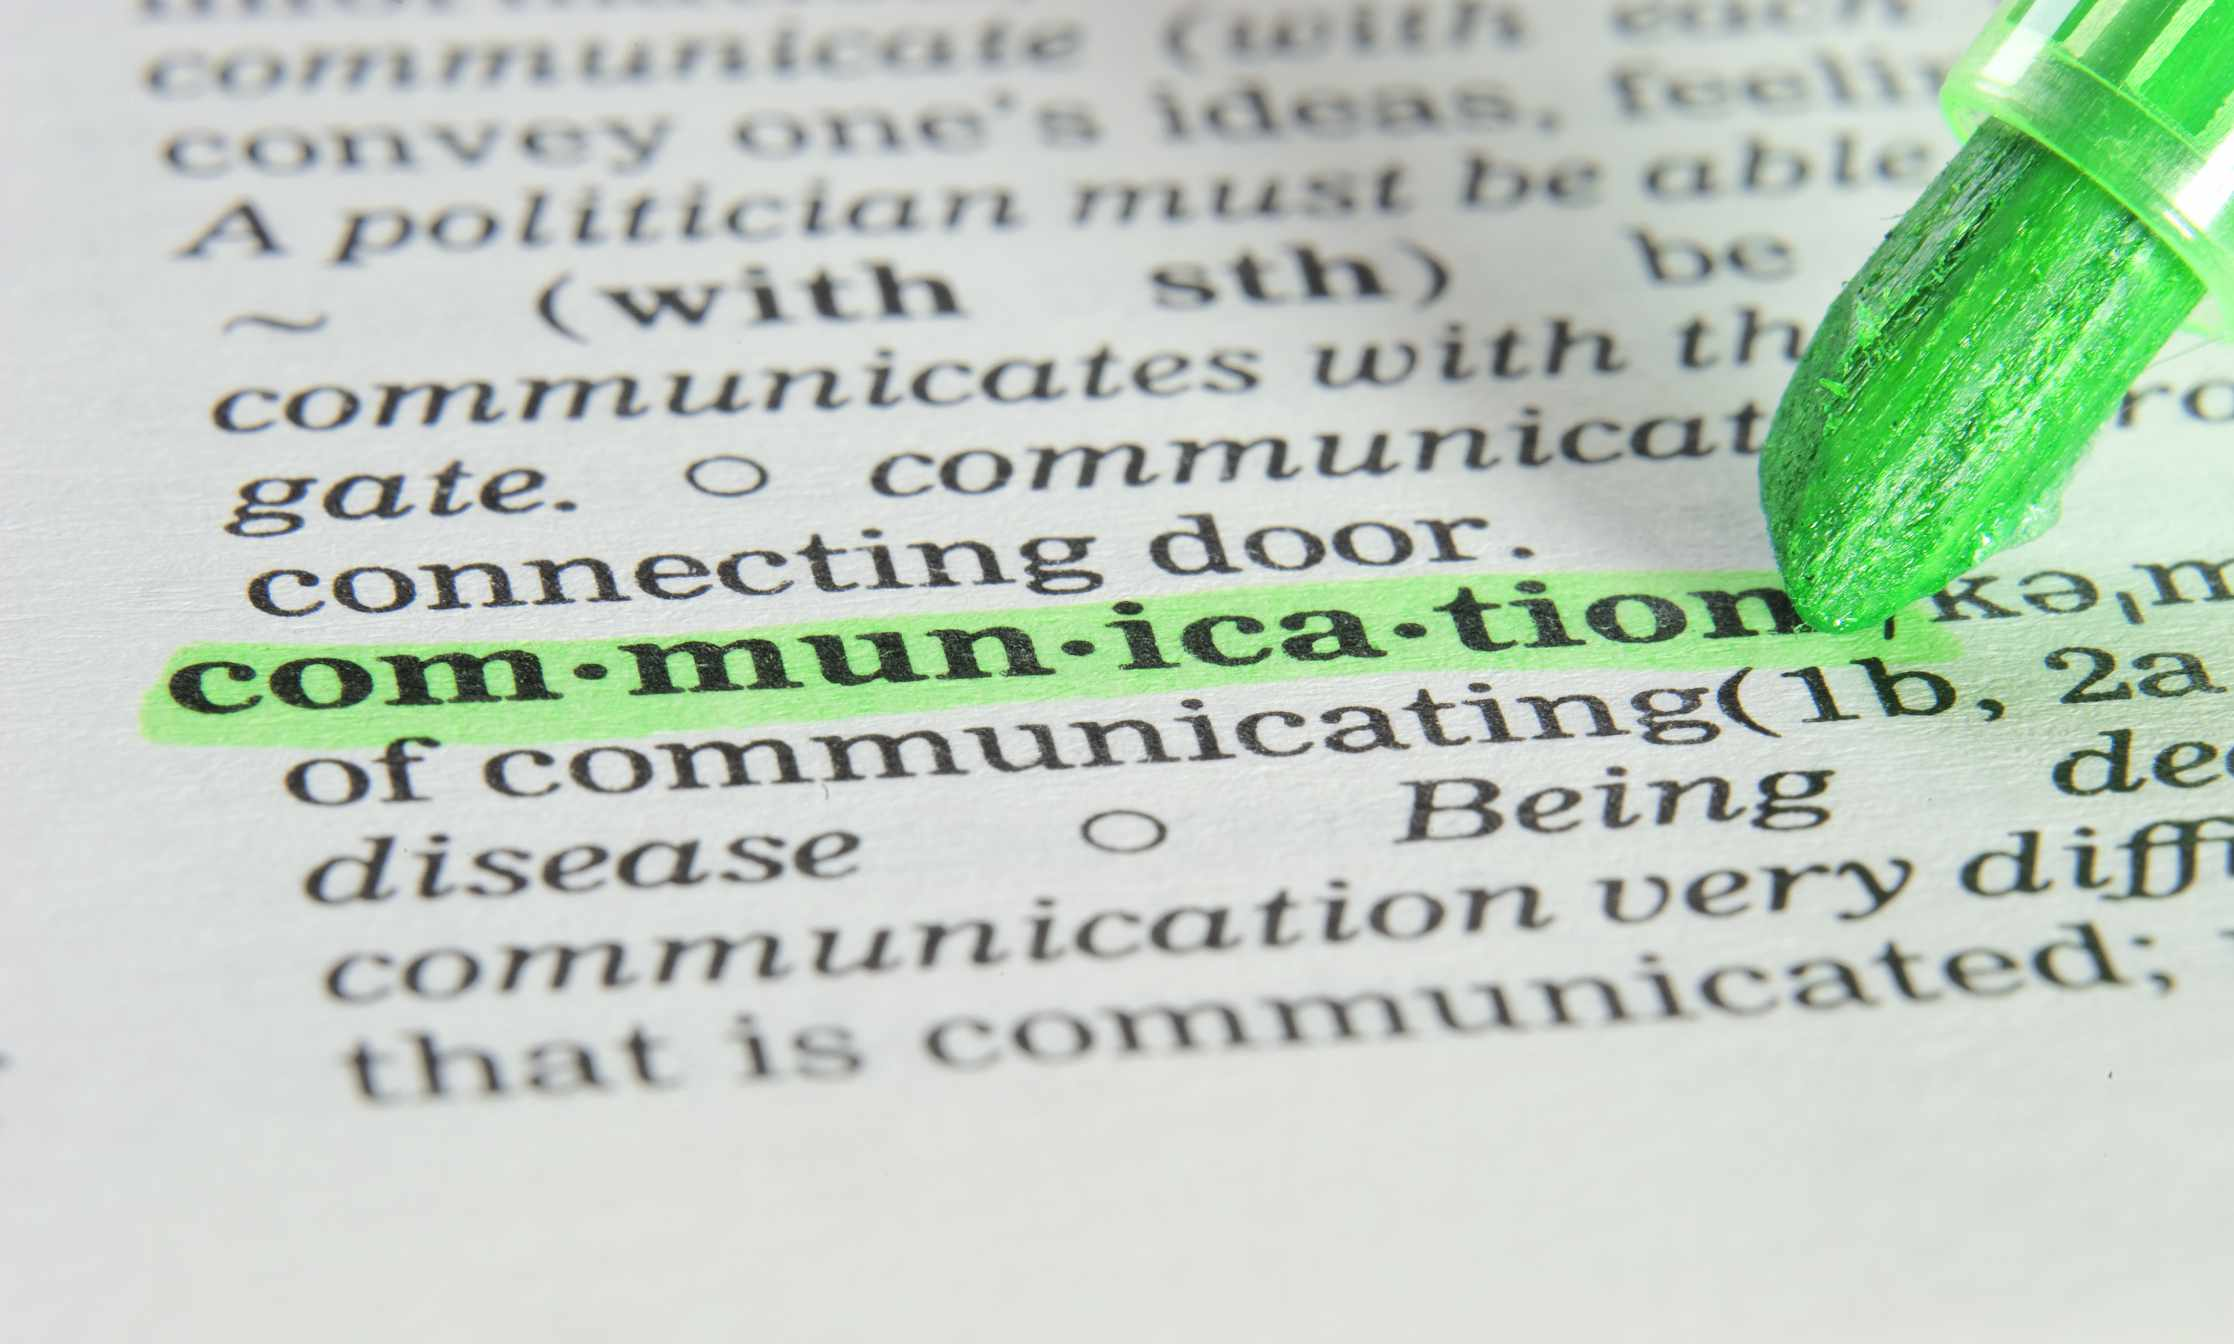 Communication in the Dictionary